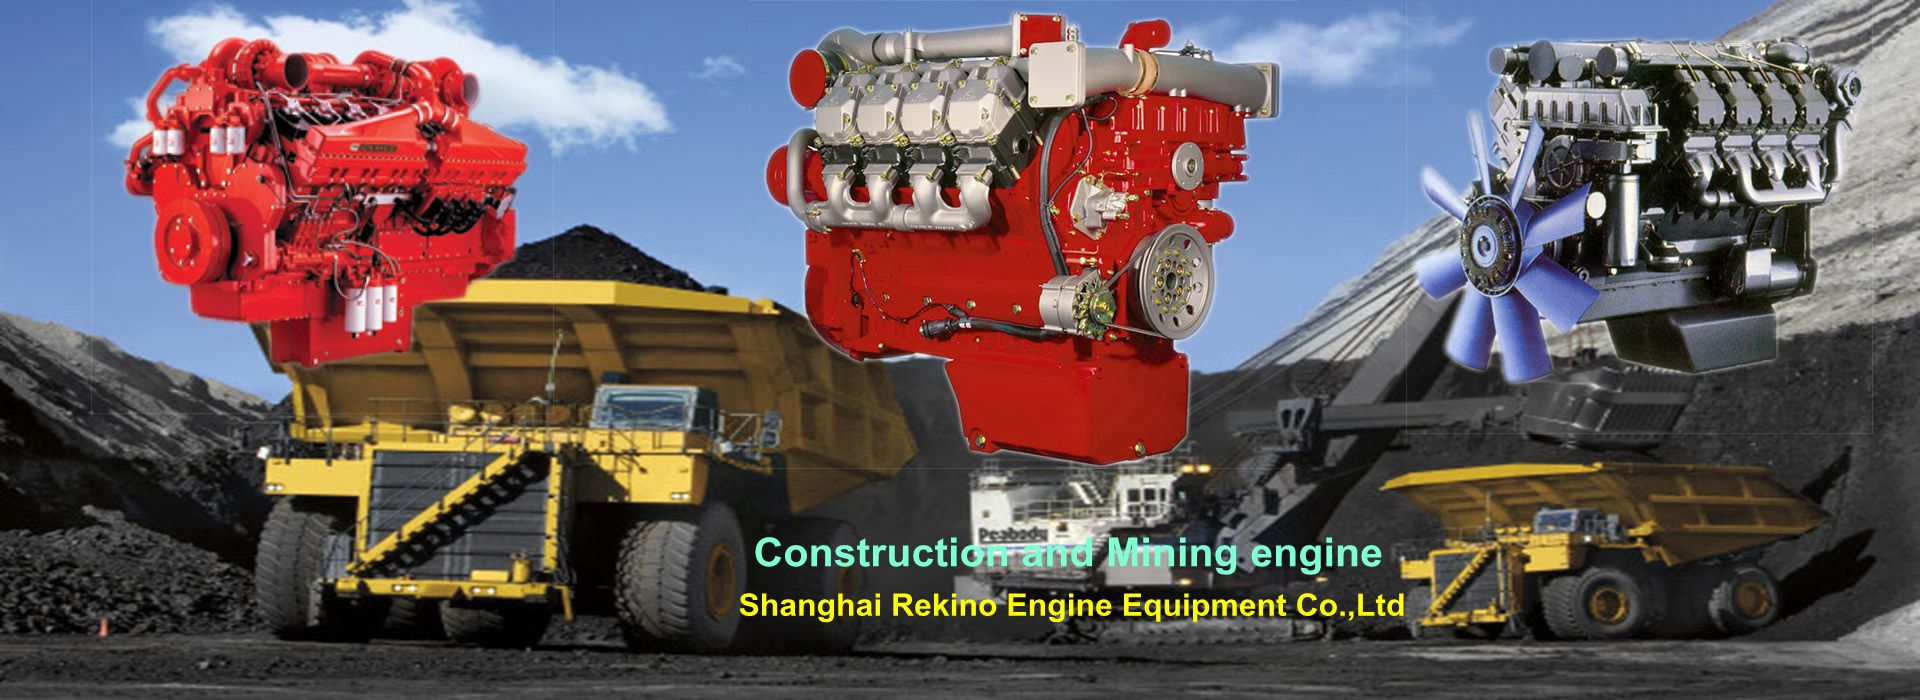 Construction and Mining engine